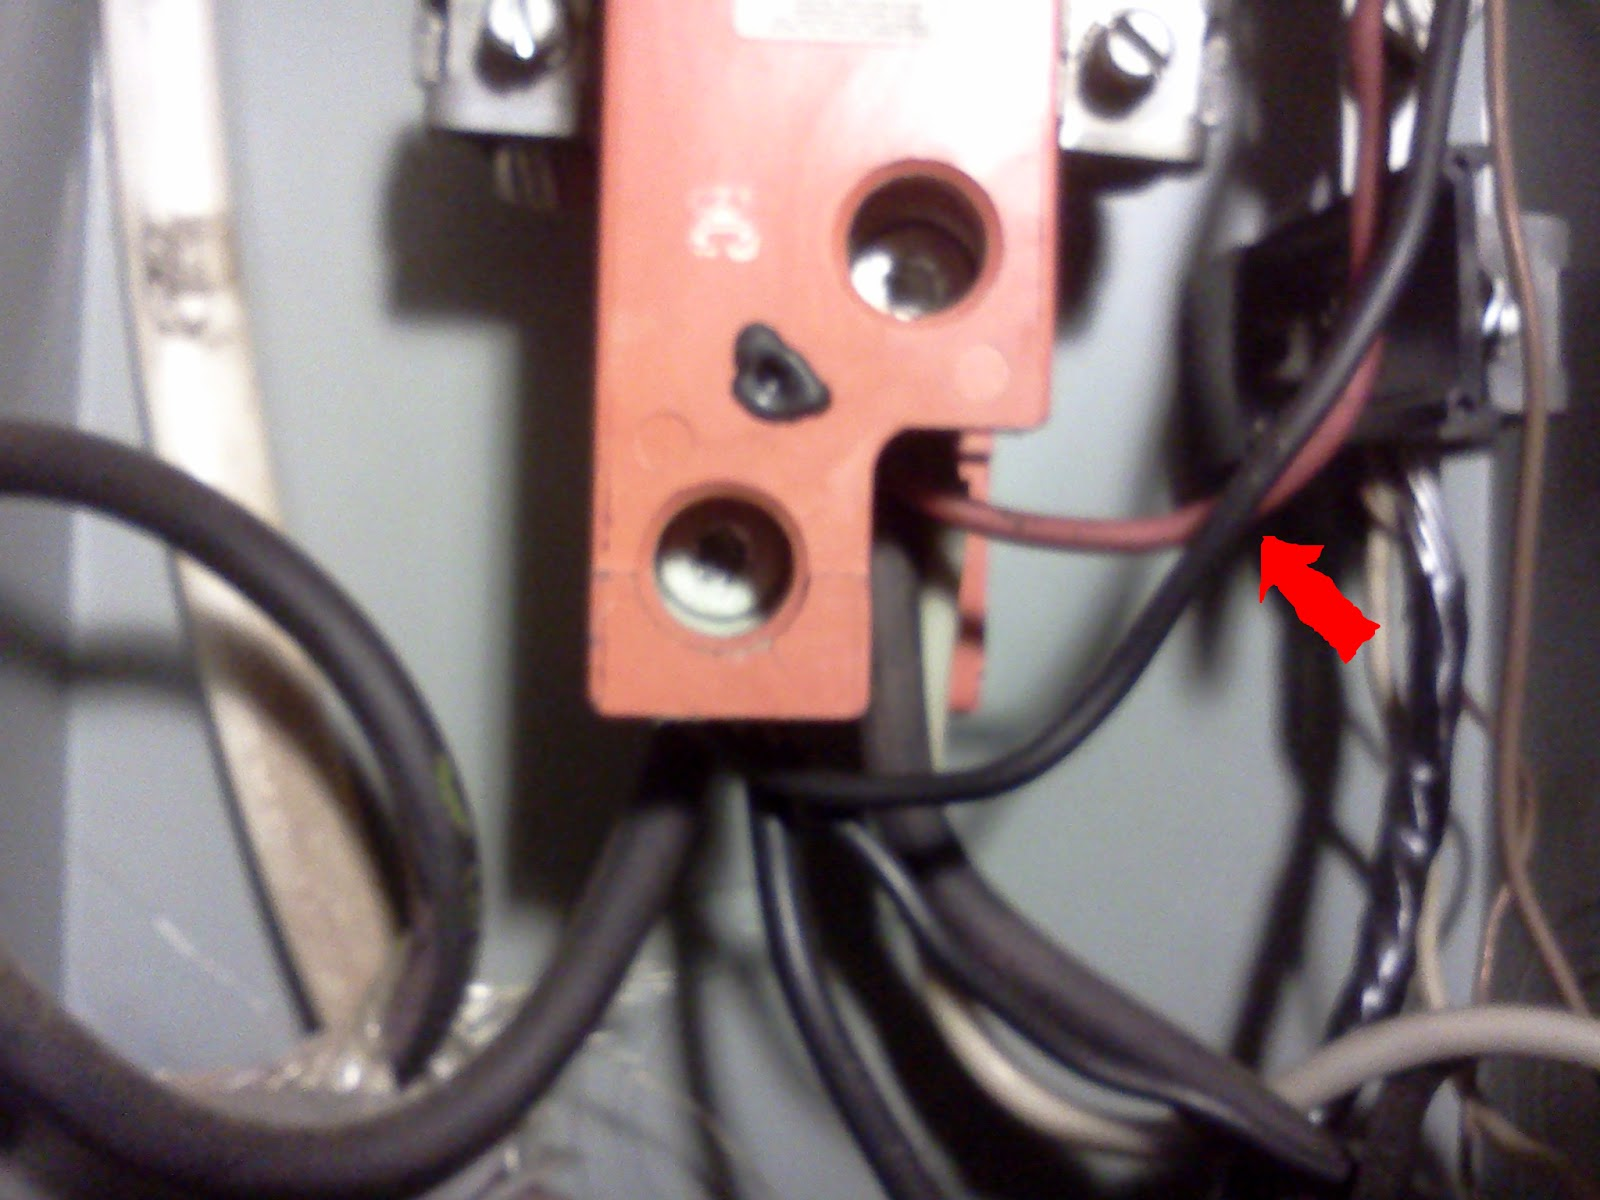 Lazorko Electric Fire Caused By Improper Wiring How To Wire 100 Sub Panel Diagram Immediately Obvious Was That The Ampere Rated Cable Not Properly Protected From Over Current Because It Connected 200a Main Breaker